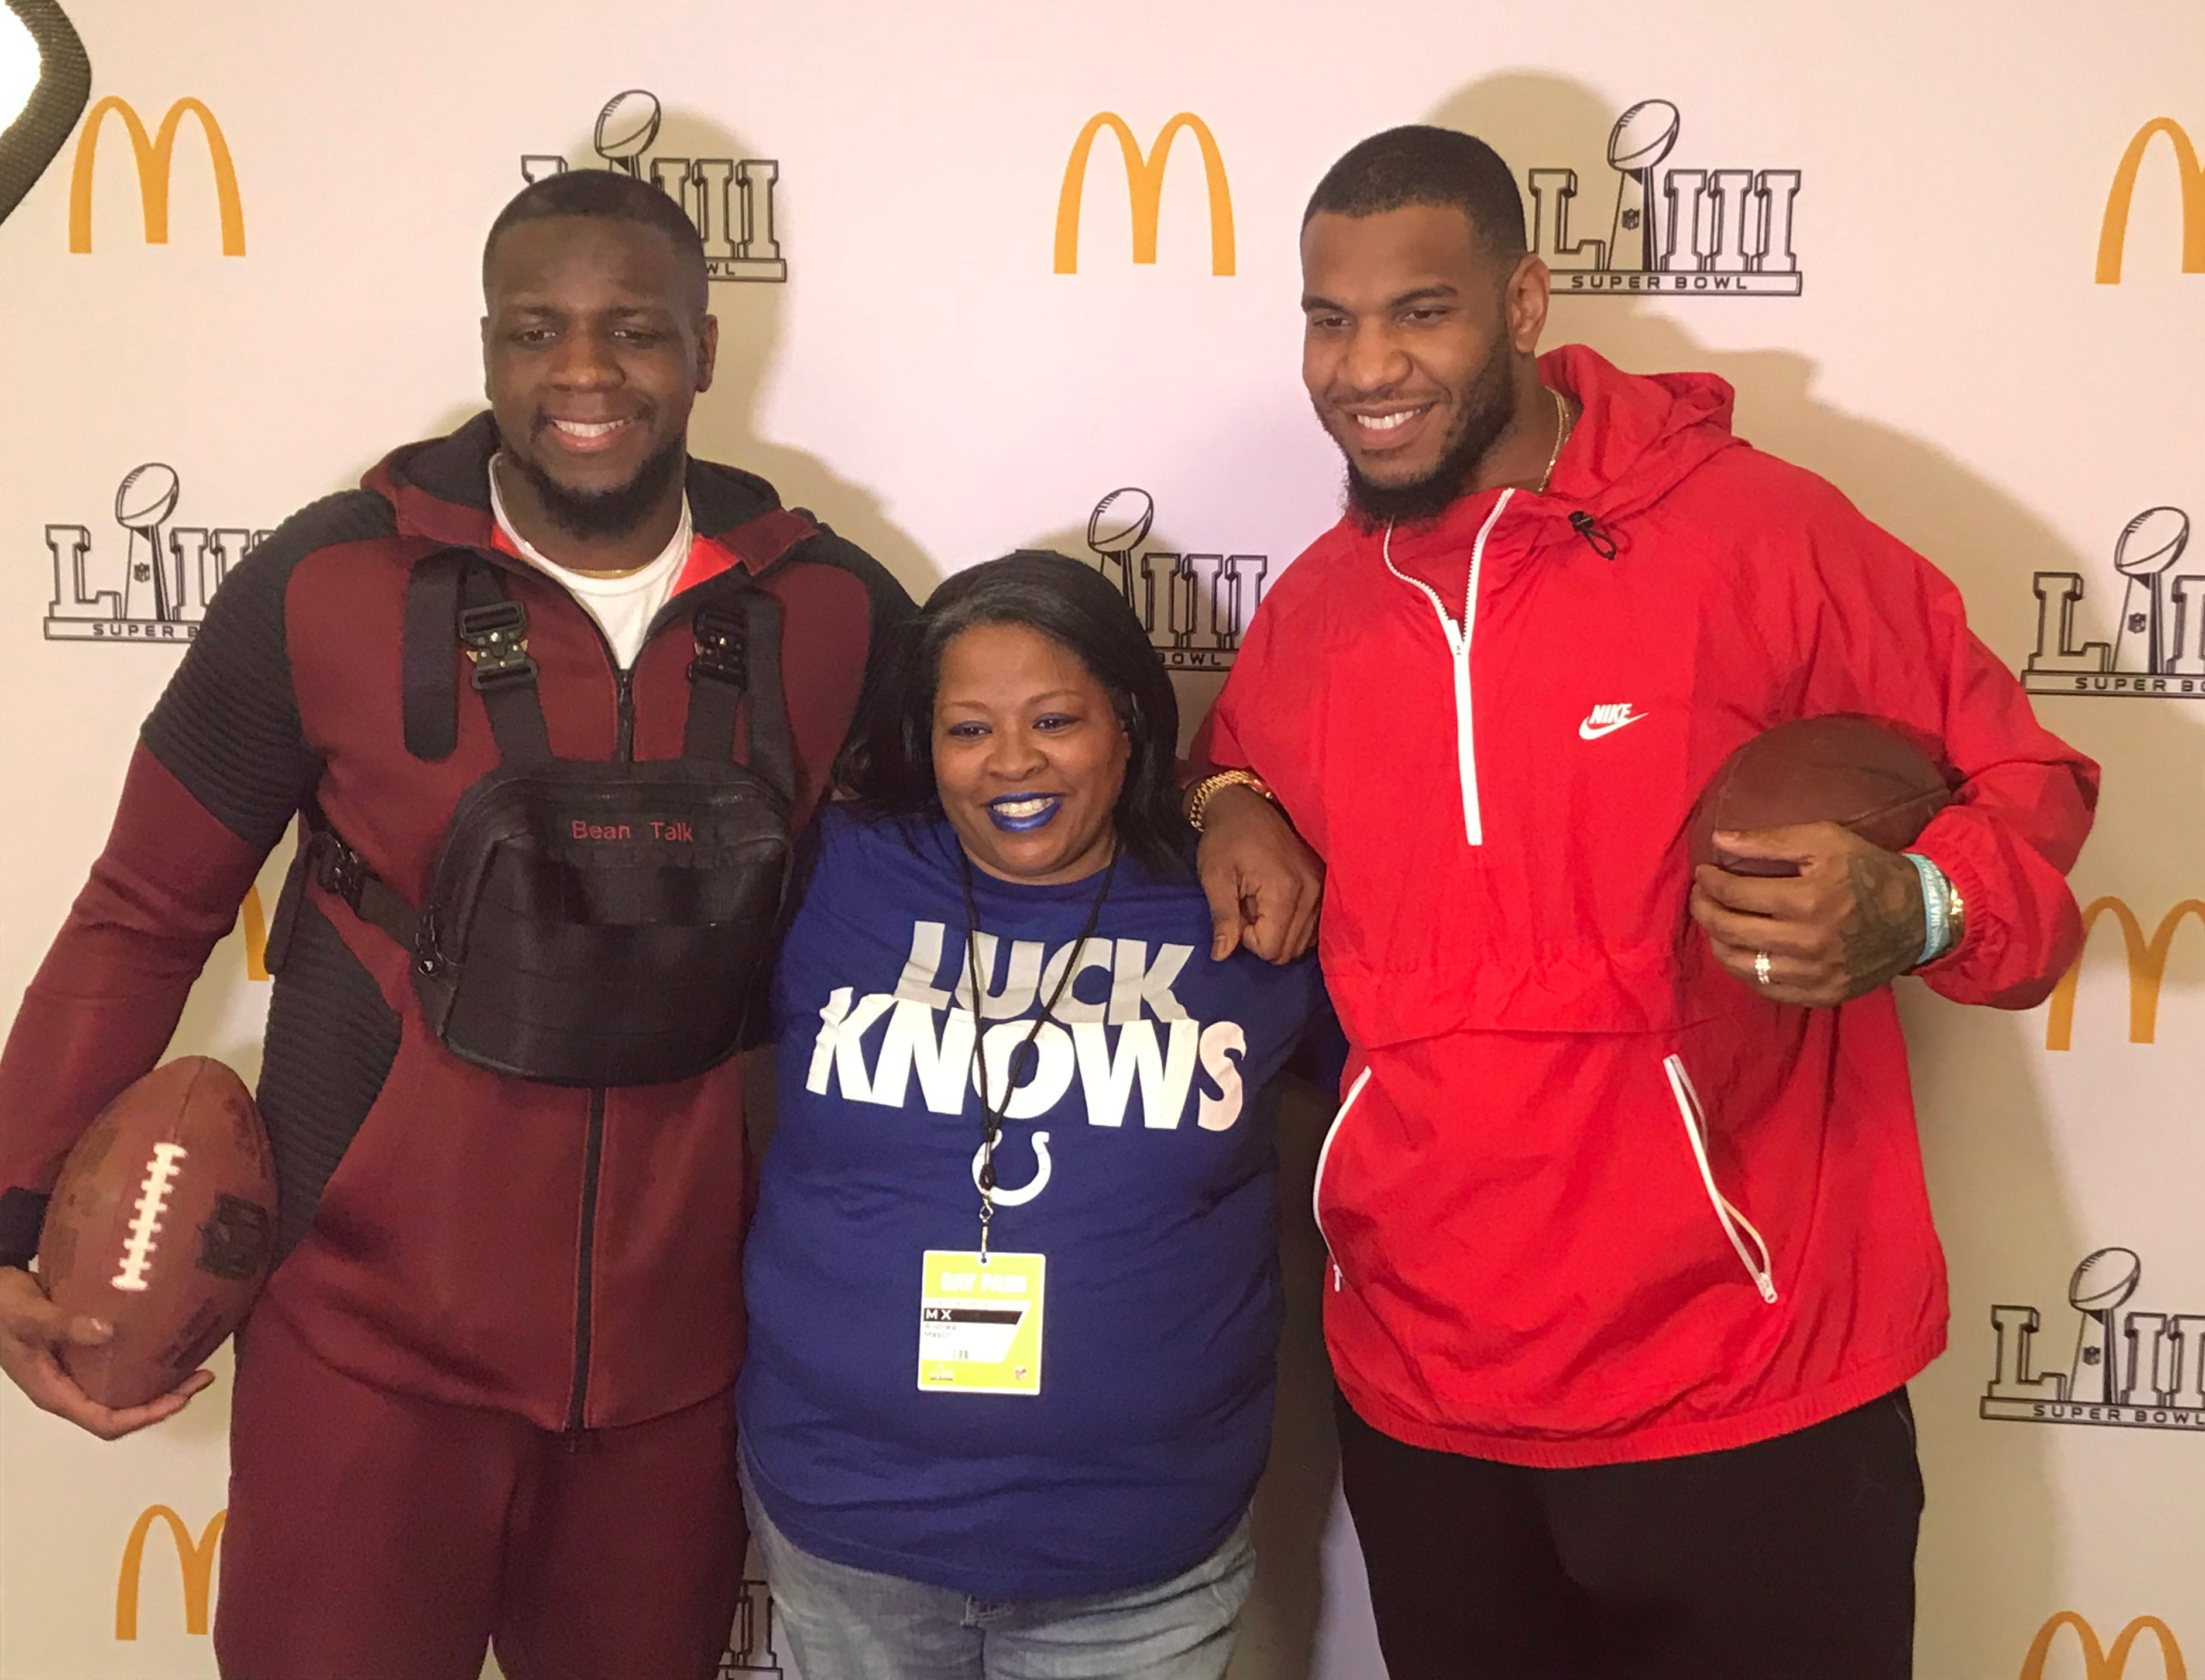 Atlanta Falcons wide receiver Mohamed Sanu, left, and Indianapolis Colts tight end Eric Ebron, right, pose with a fan at the NFL Play Family Football Challenge in Atlanta on Saturday, Feb. 2, 2019.